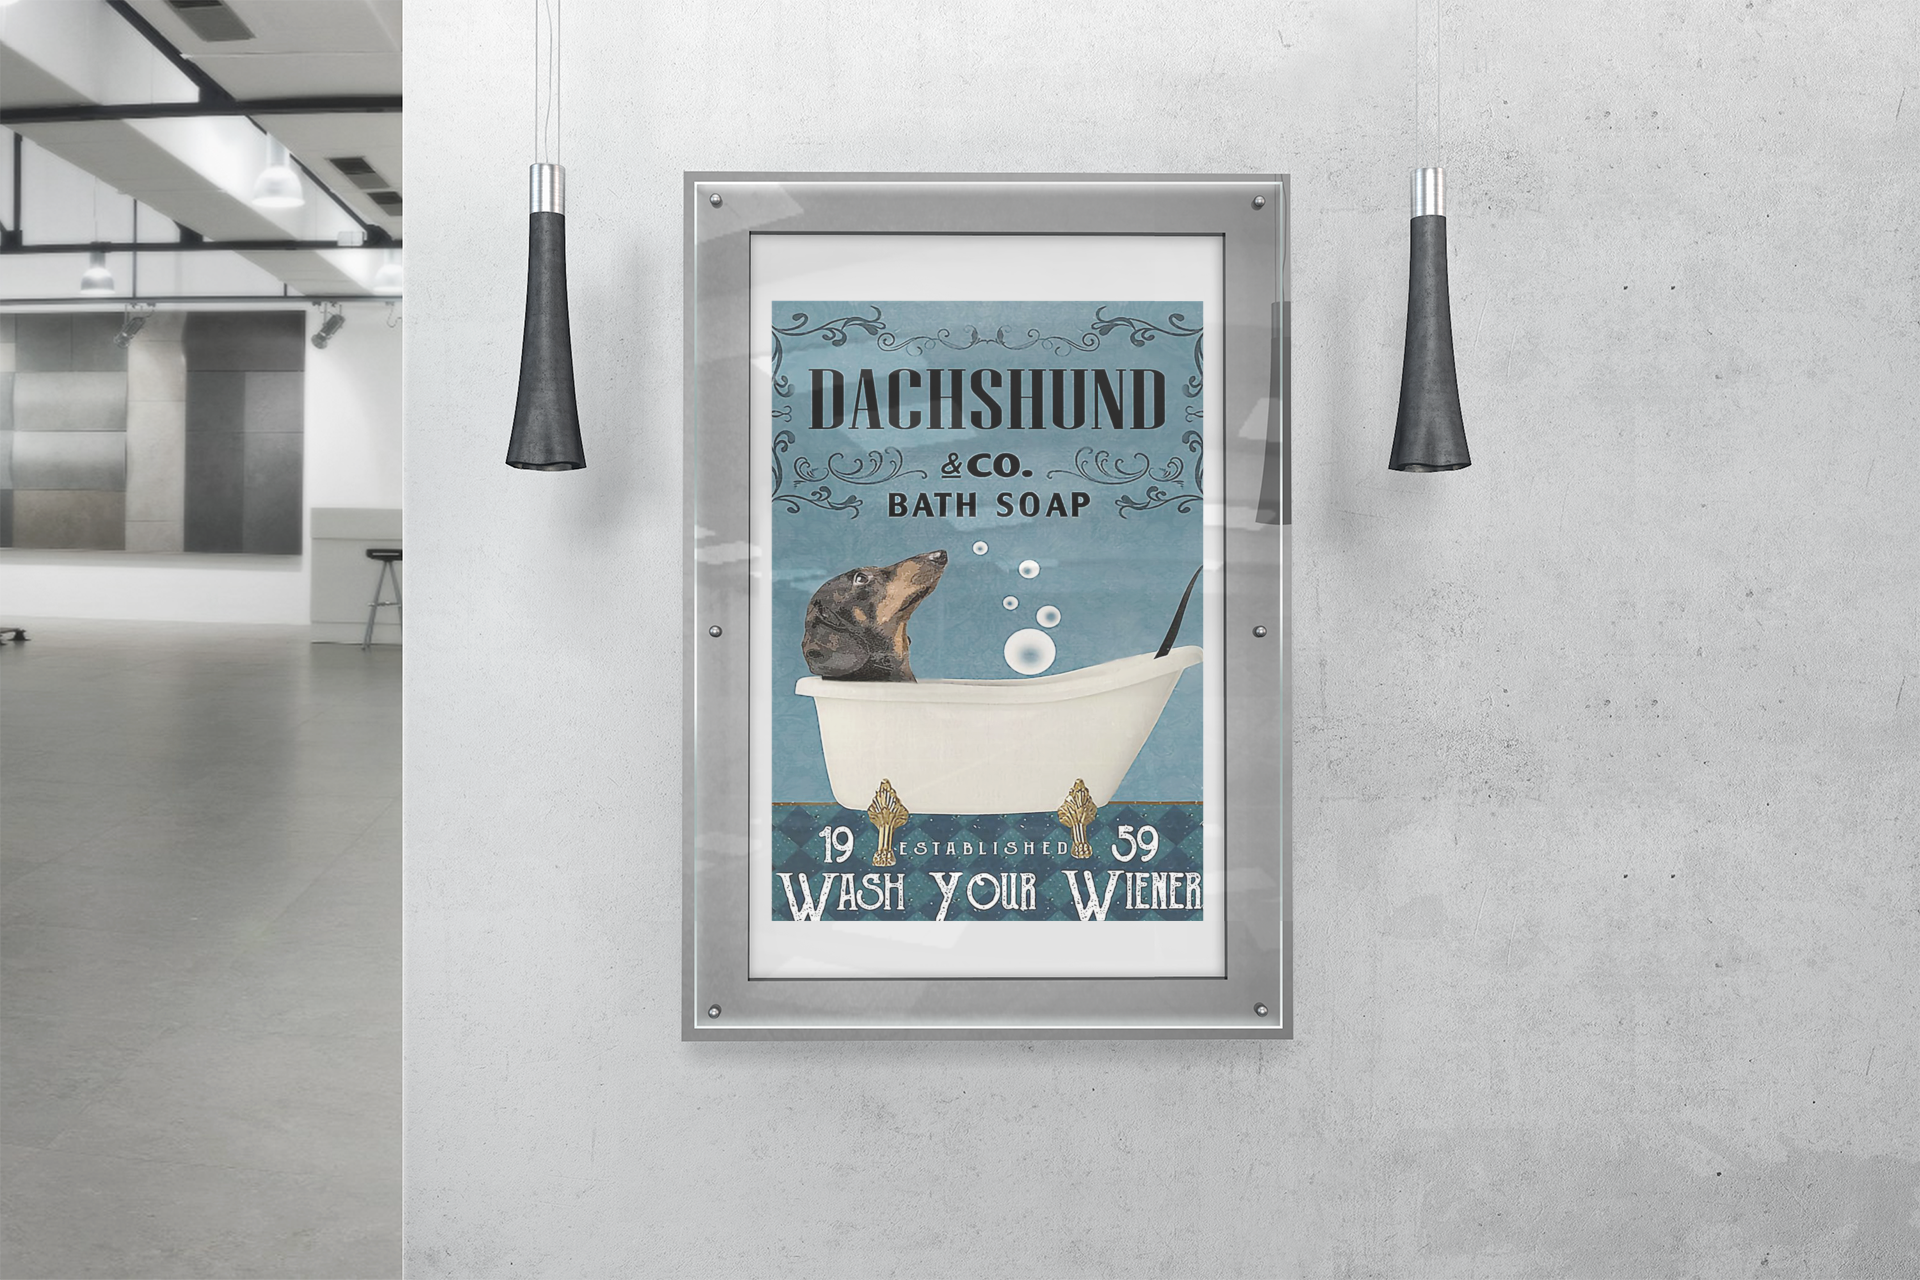 Dachshund and co bath soap wash your wiener poster14